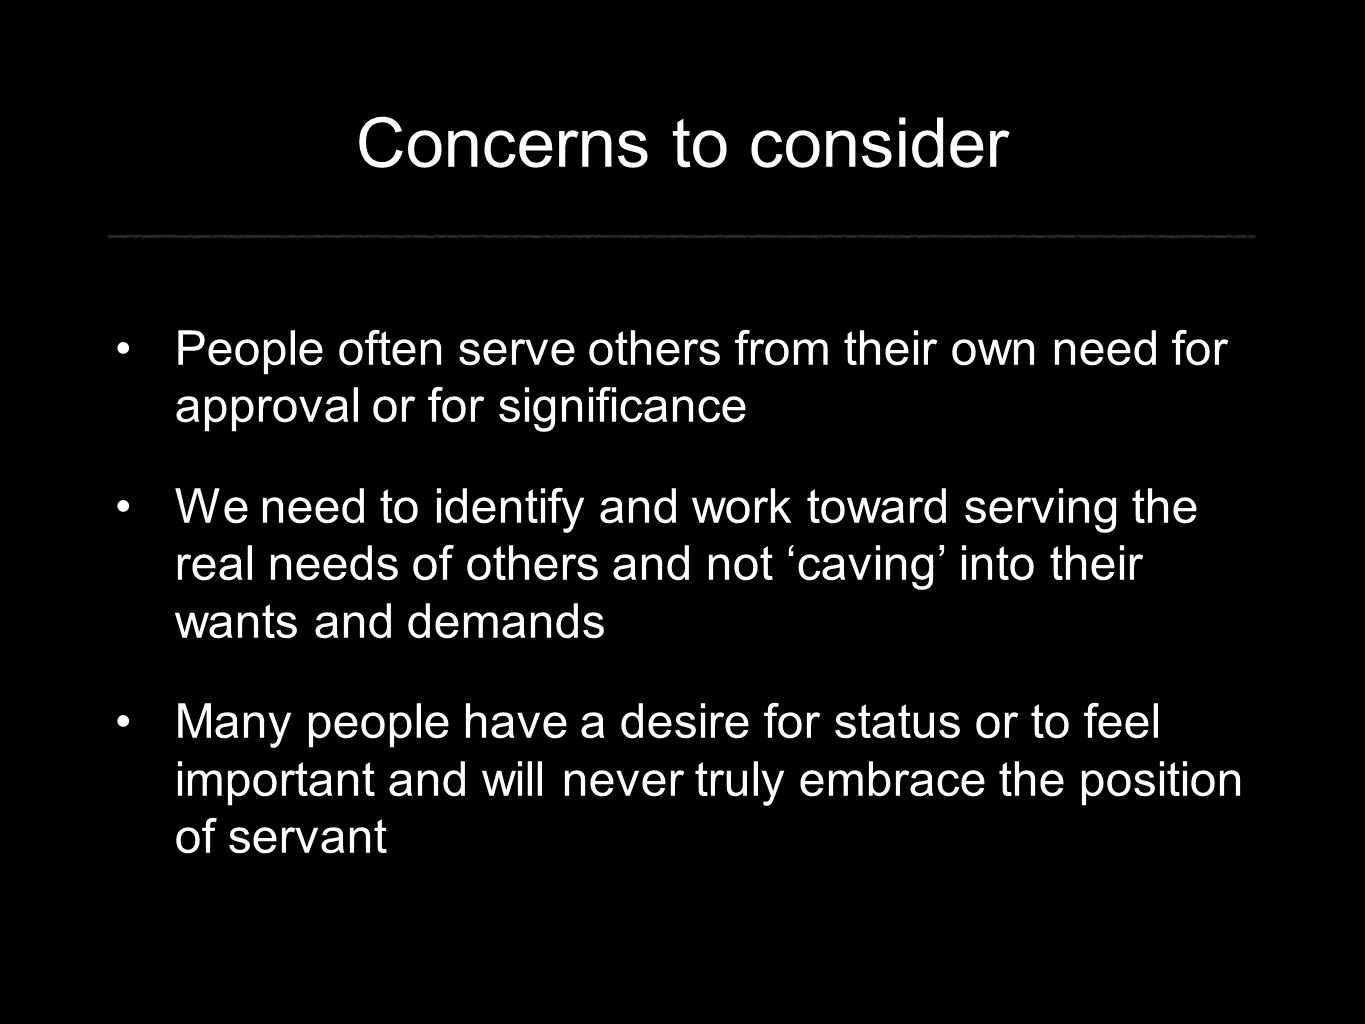 Concerns to consider People often serve others from their own need for approval or for significance We need to identify and work toward serving the real needs of others and not 'caving' into their wants and demands Many people have a desire for status or to feel important and will never truly embrace the position of servant